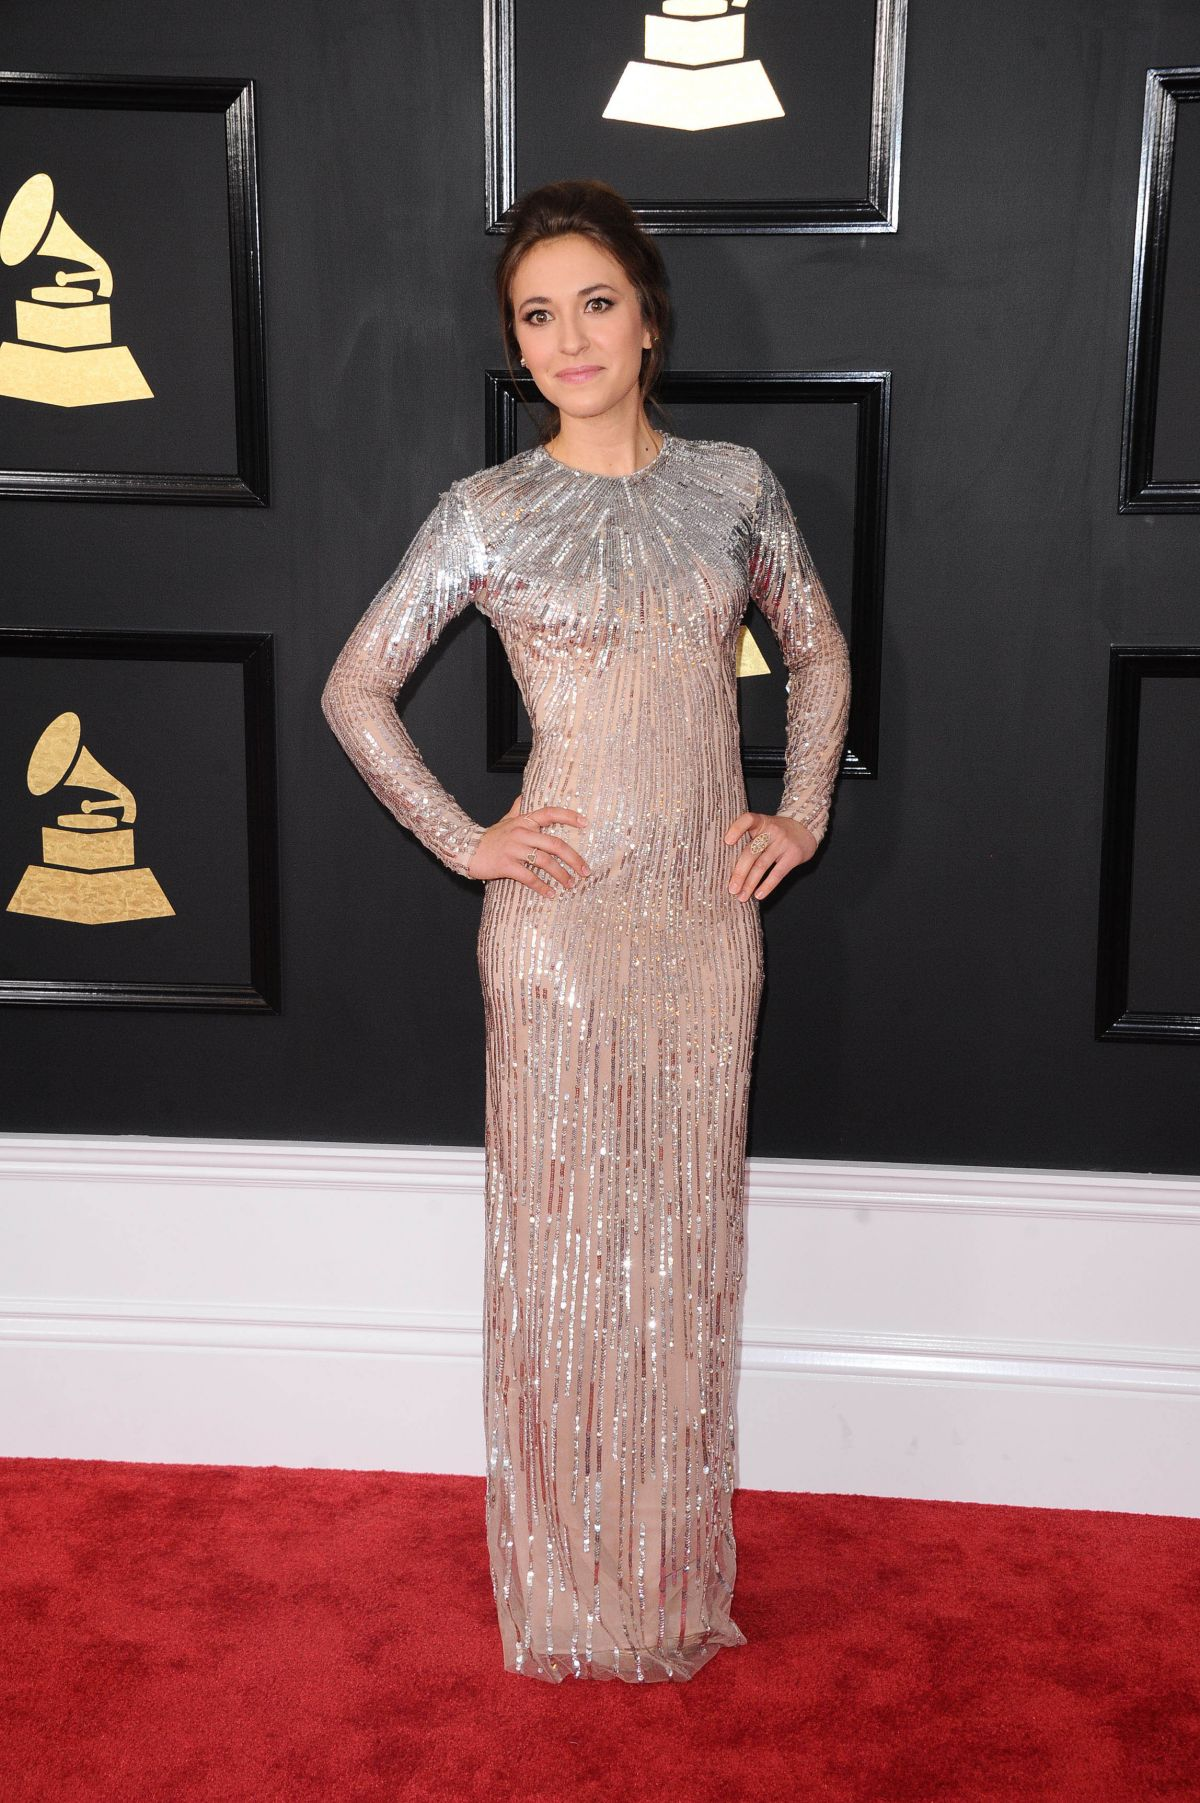 LAUREN DIAGLE at 59th Annual Grammy Awards in Los Angeles 02/12/2017